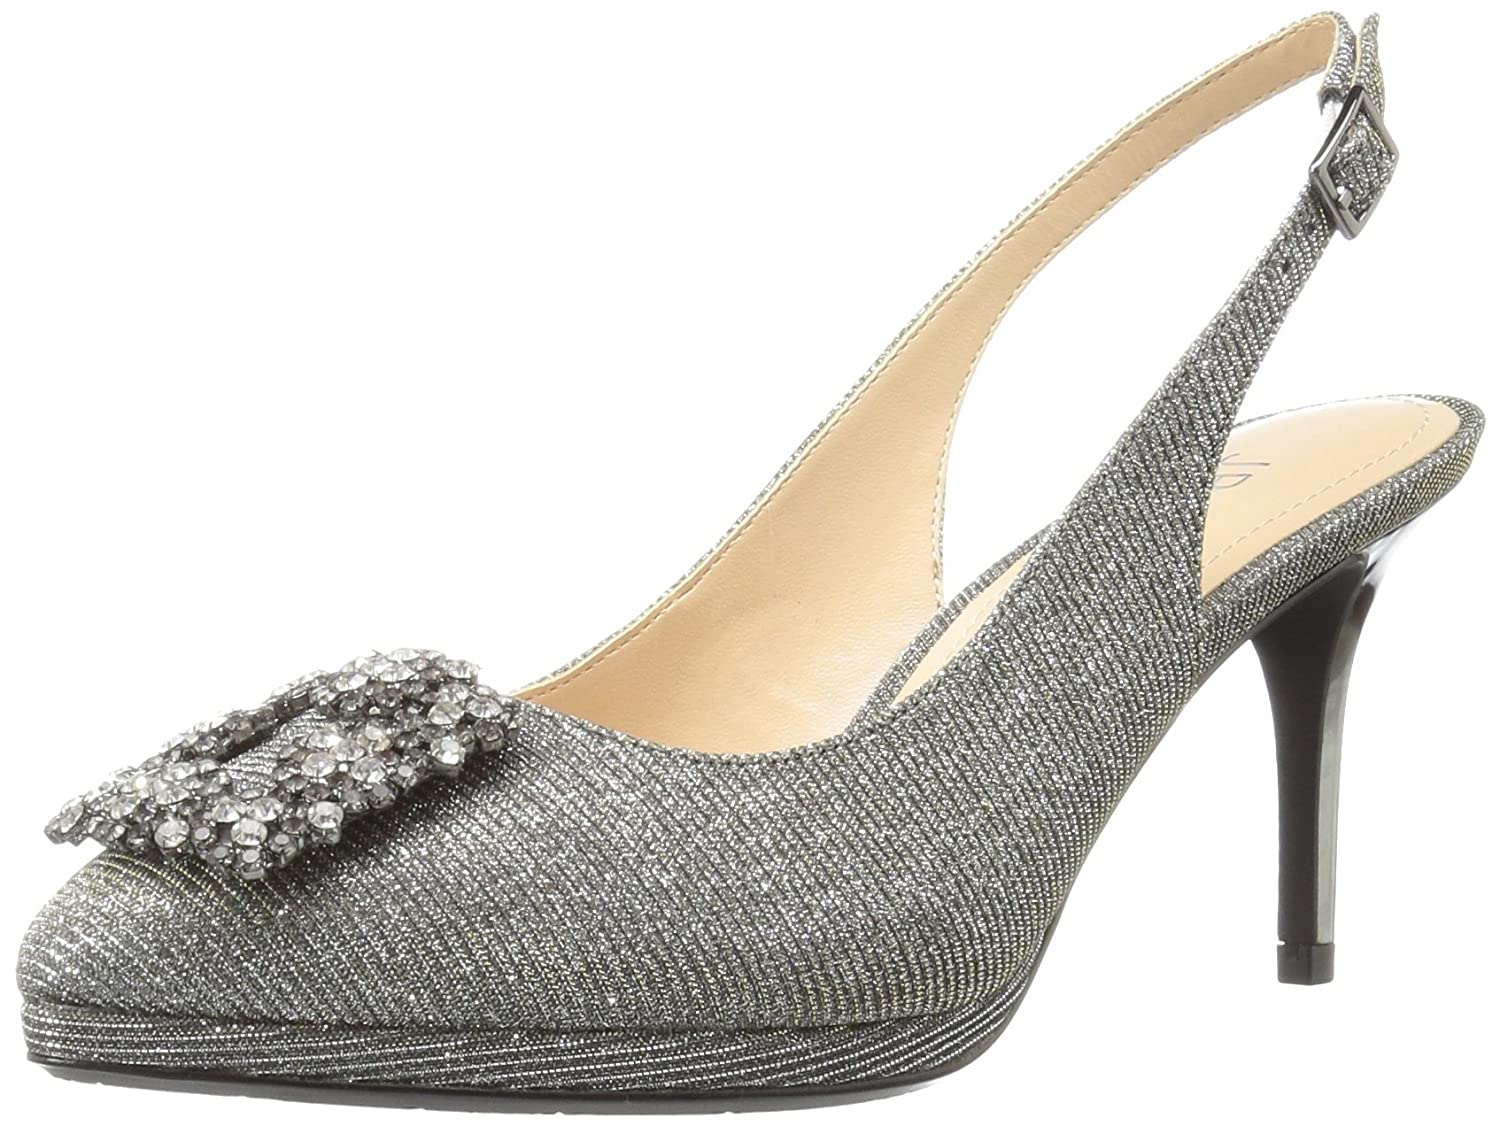 J.Renee Women's Devorah Dress Pump B01INJLGDY 11 B(M) US|Pewter